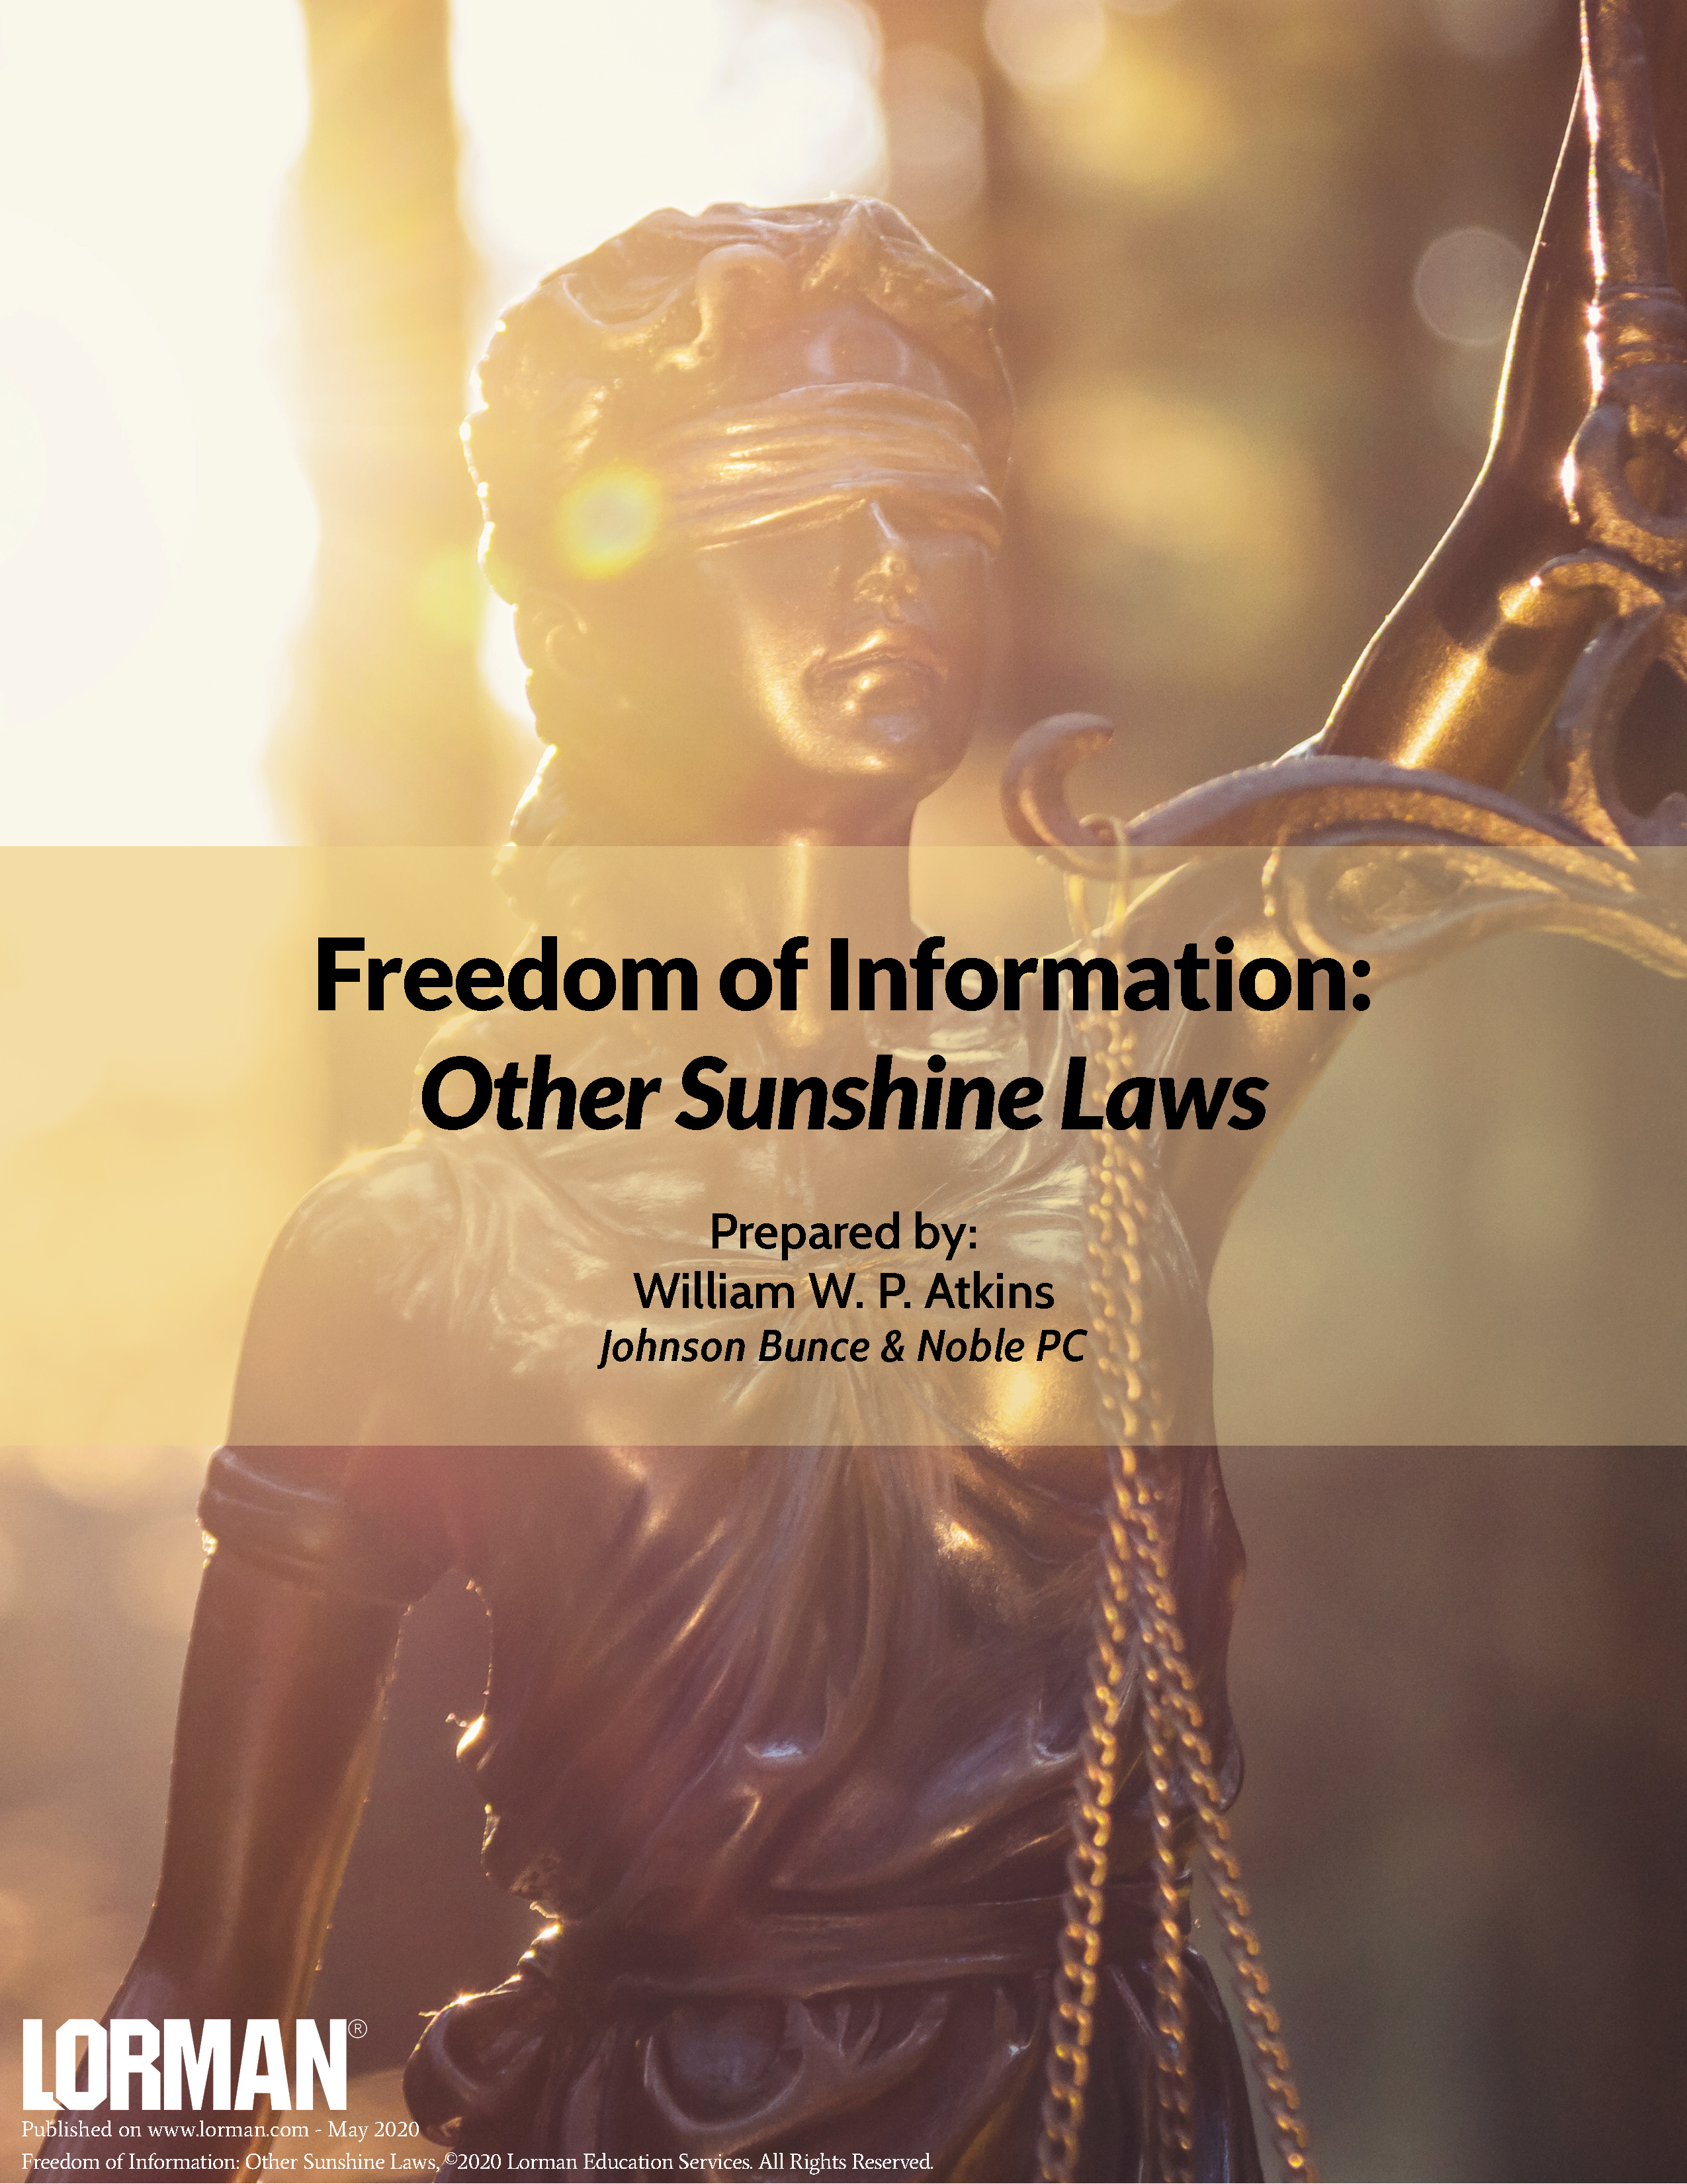 Freedom of Information: Other Sunshine Laws